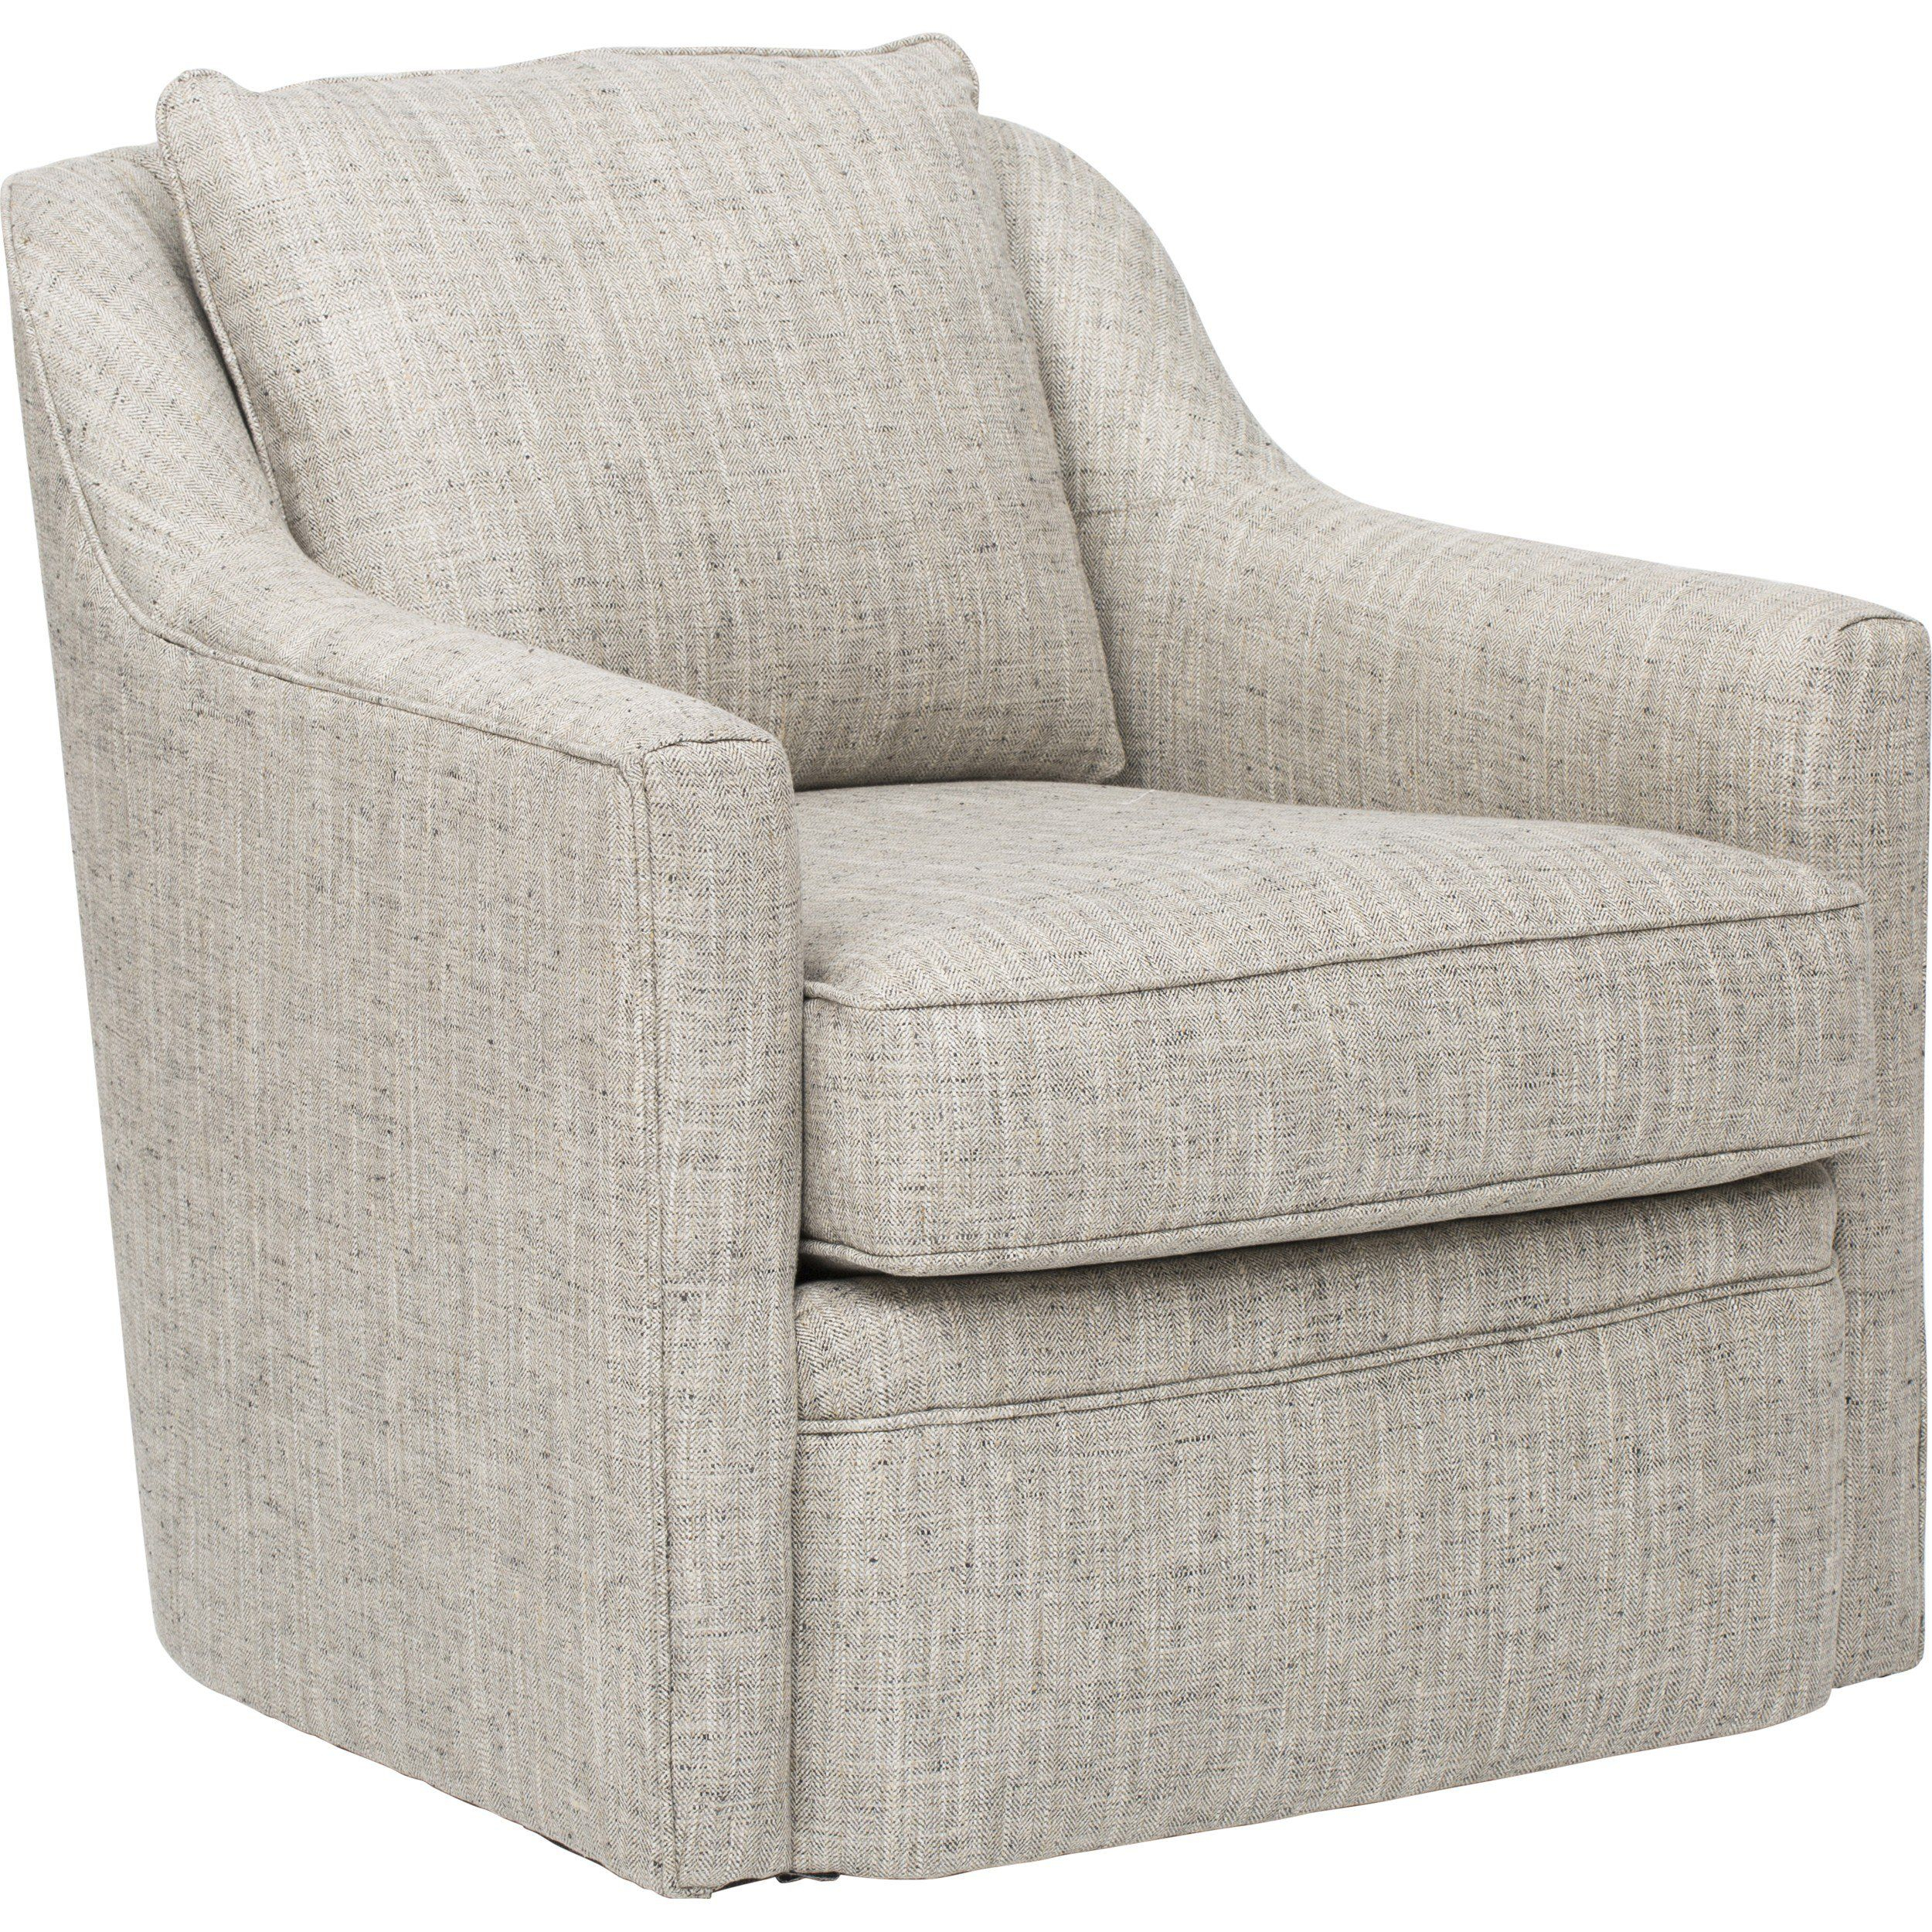 Hollins Swivel Chair | Living Room | Pinterest | Swivel Chair, Chair Intended For Nichol Swivel Accent Chairs (Image 7 of 25)